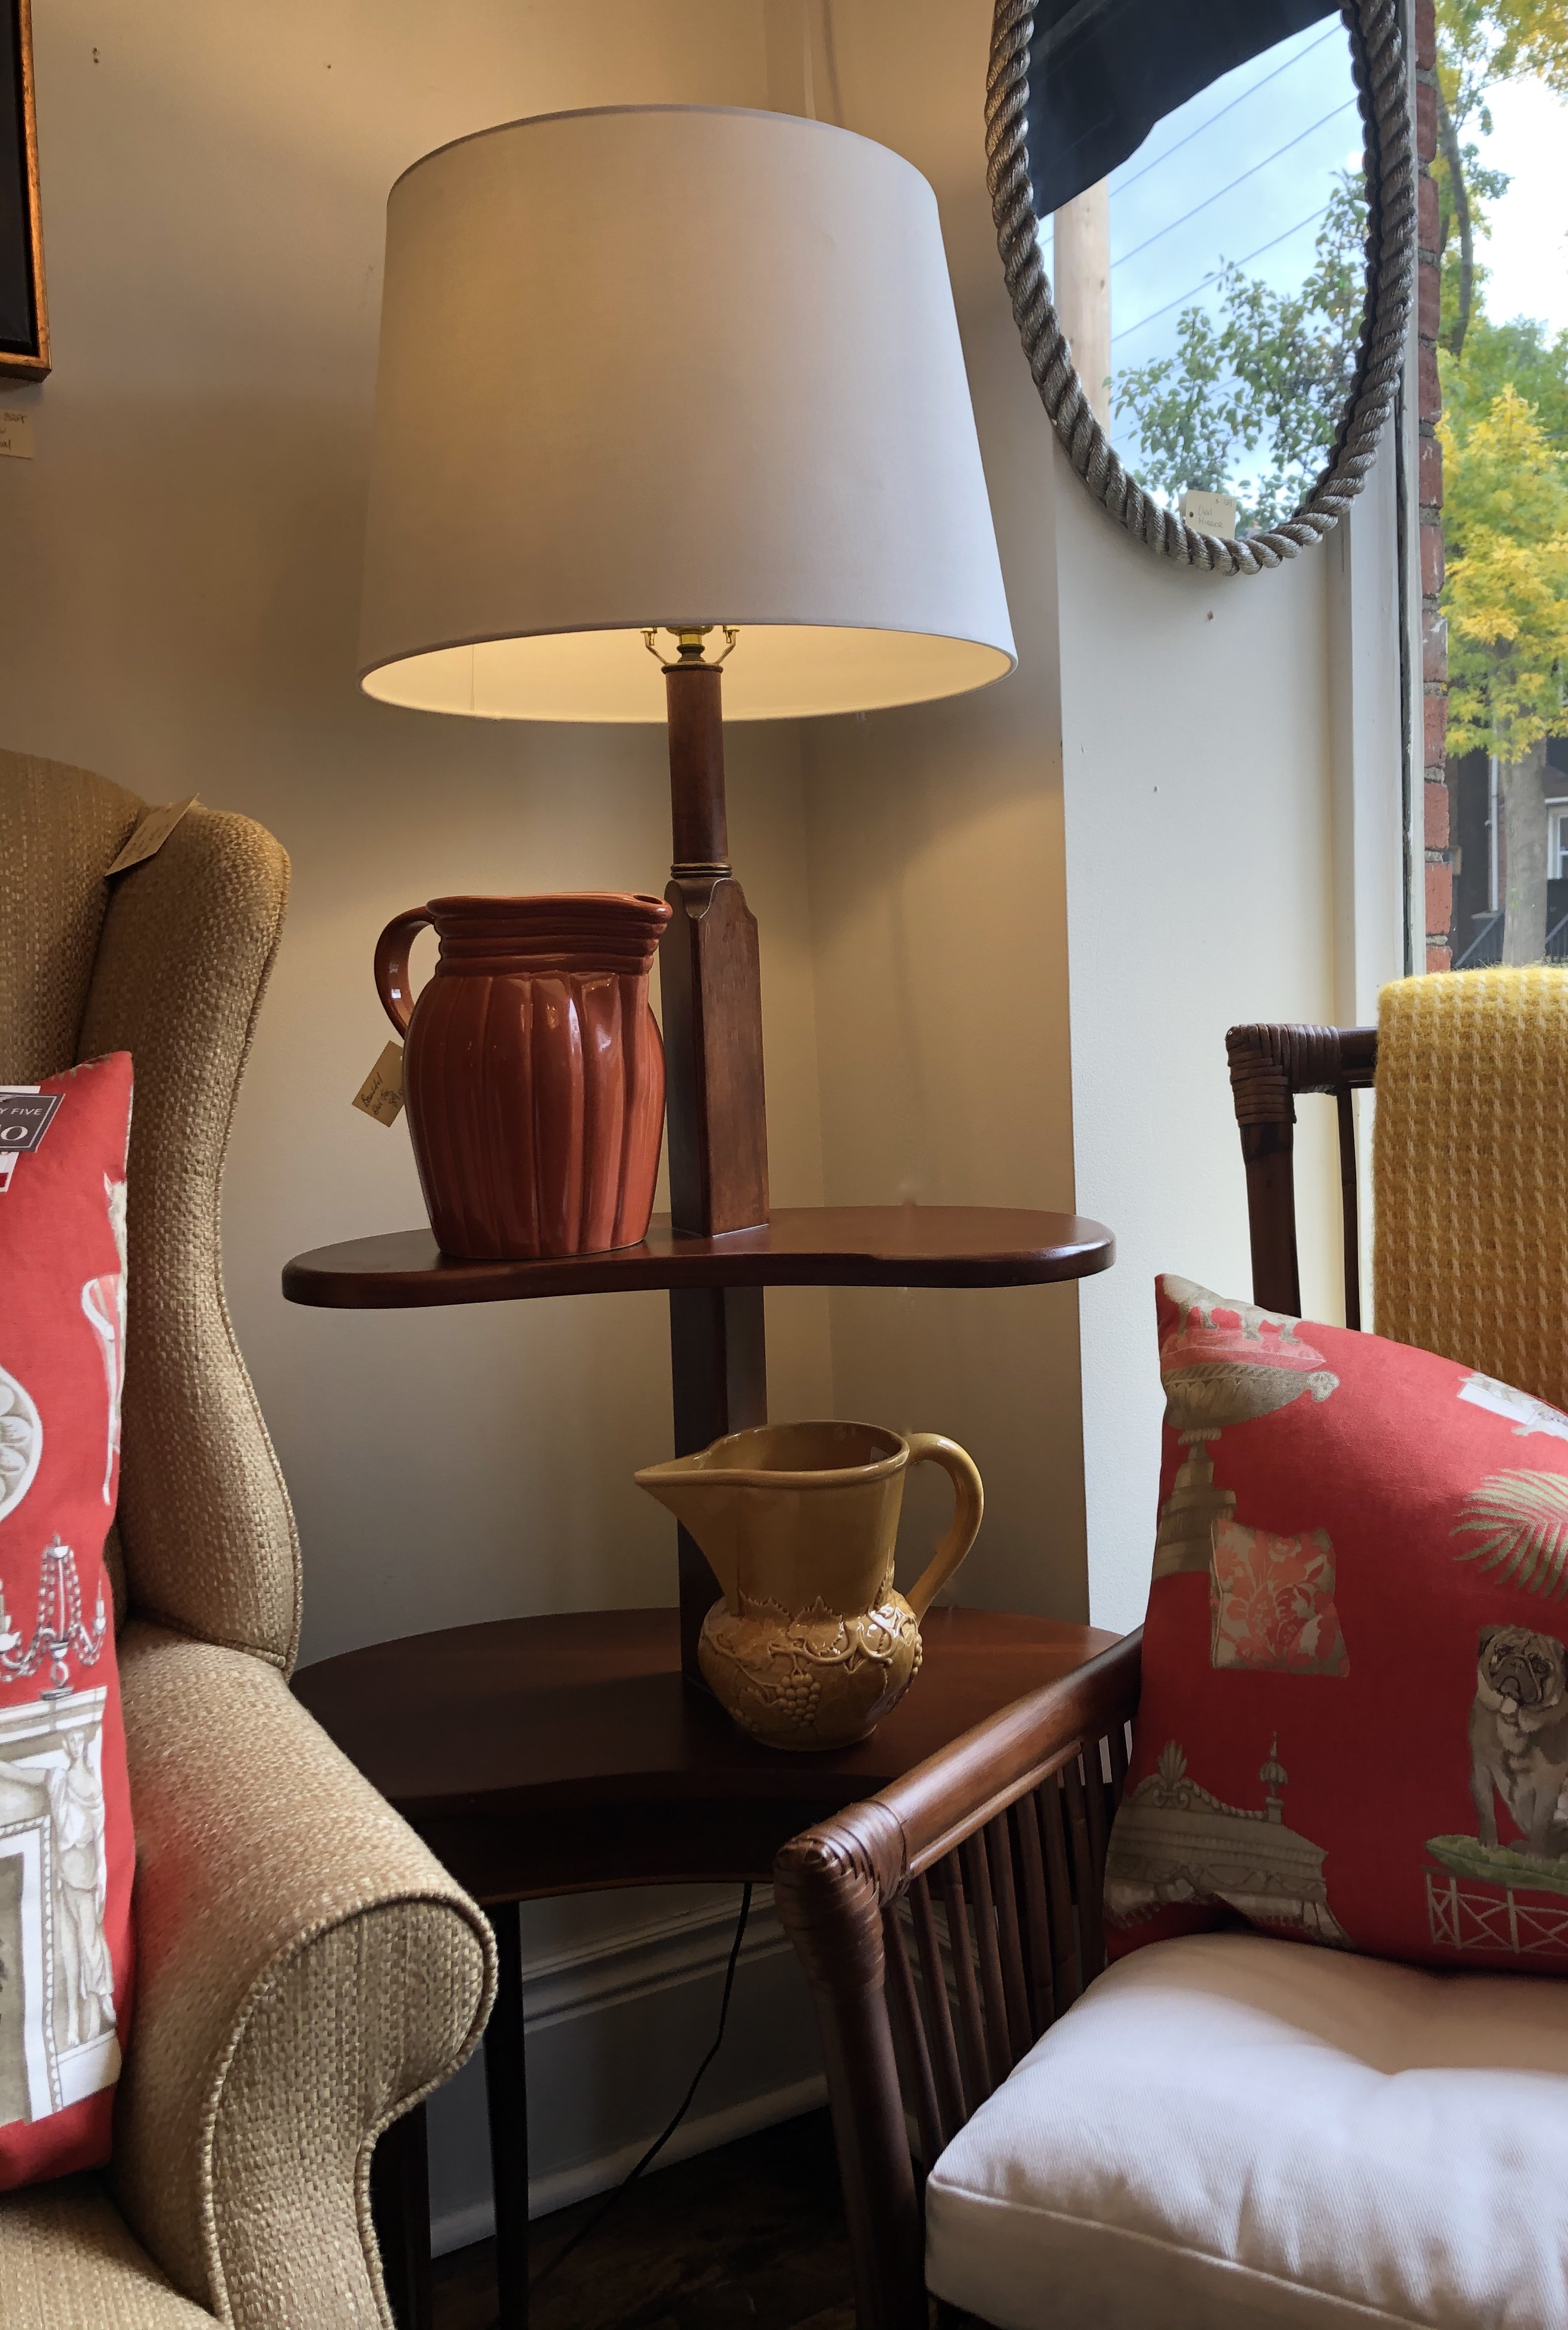 Two Tiered MCM Kidney Shaped Lamp